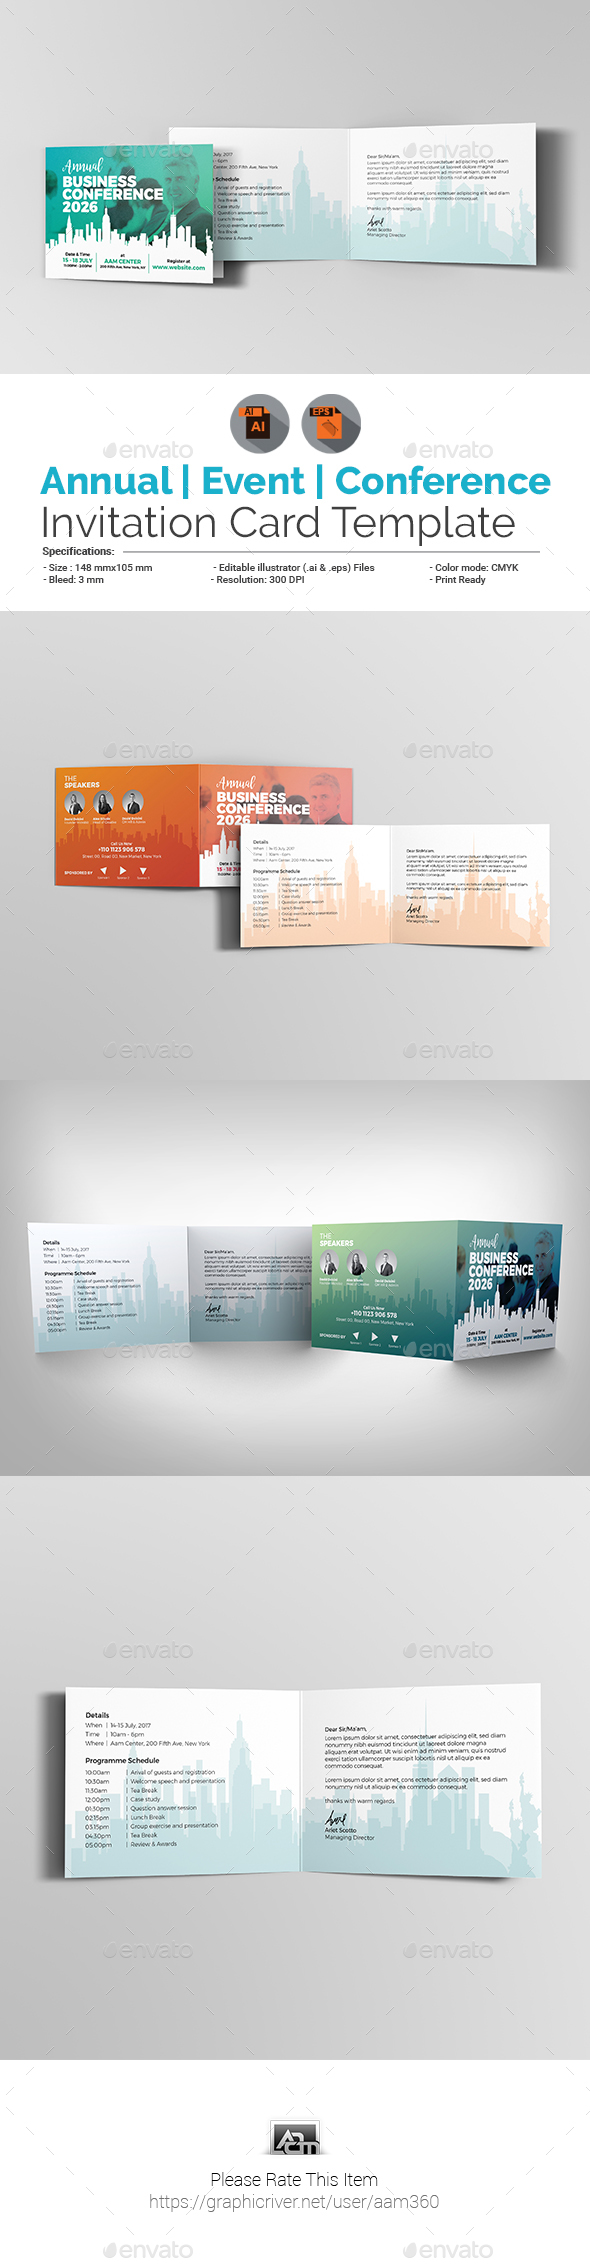 Conference Mockup Meeting Graphics Designs Templates